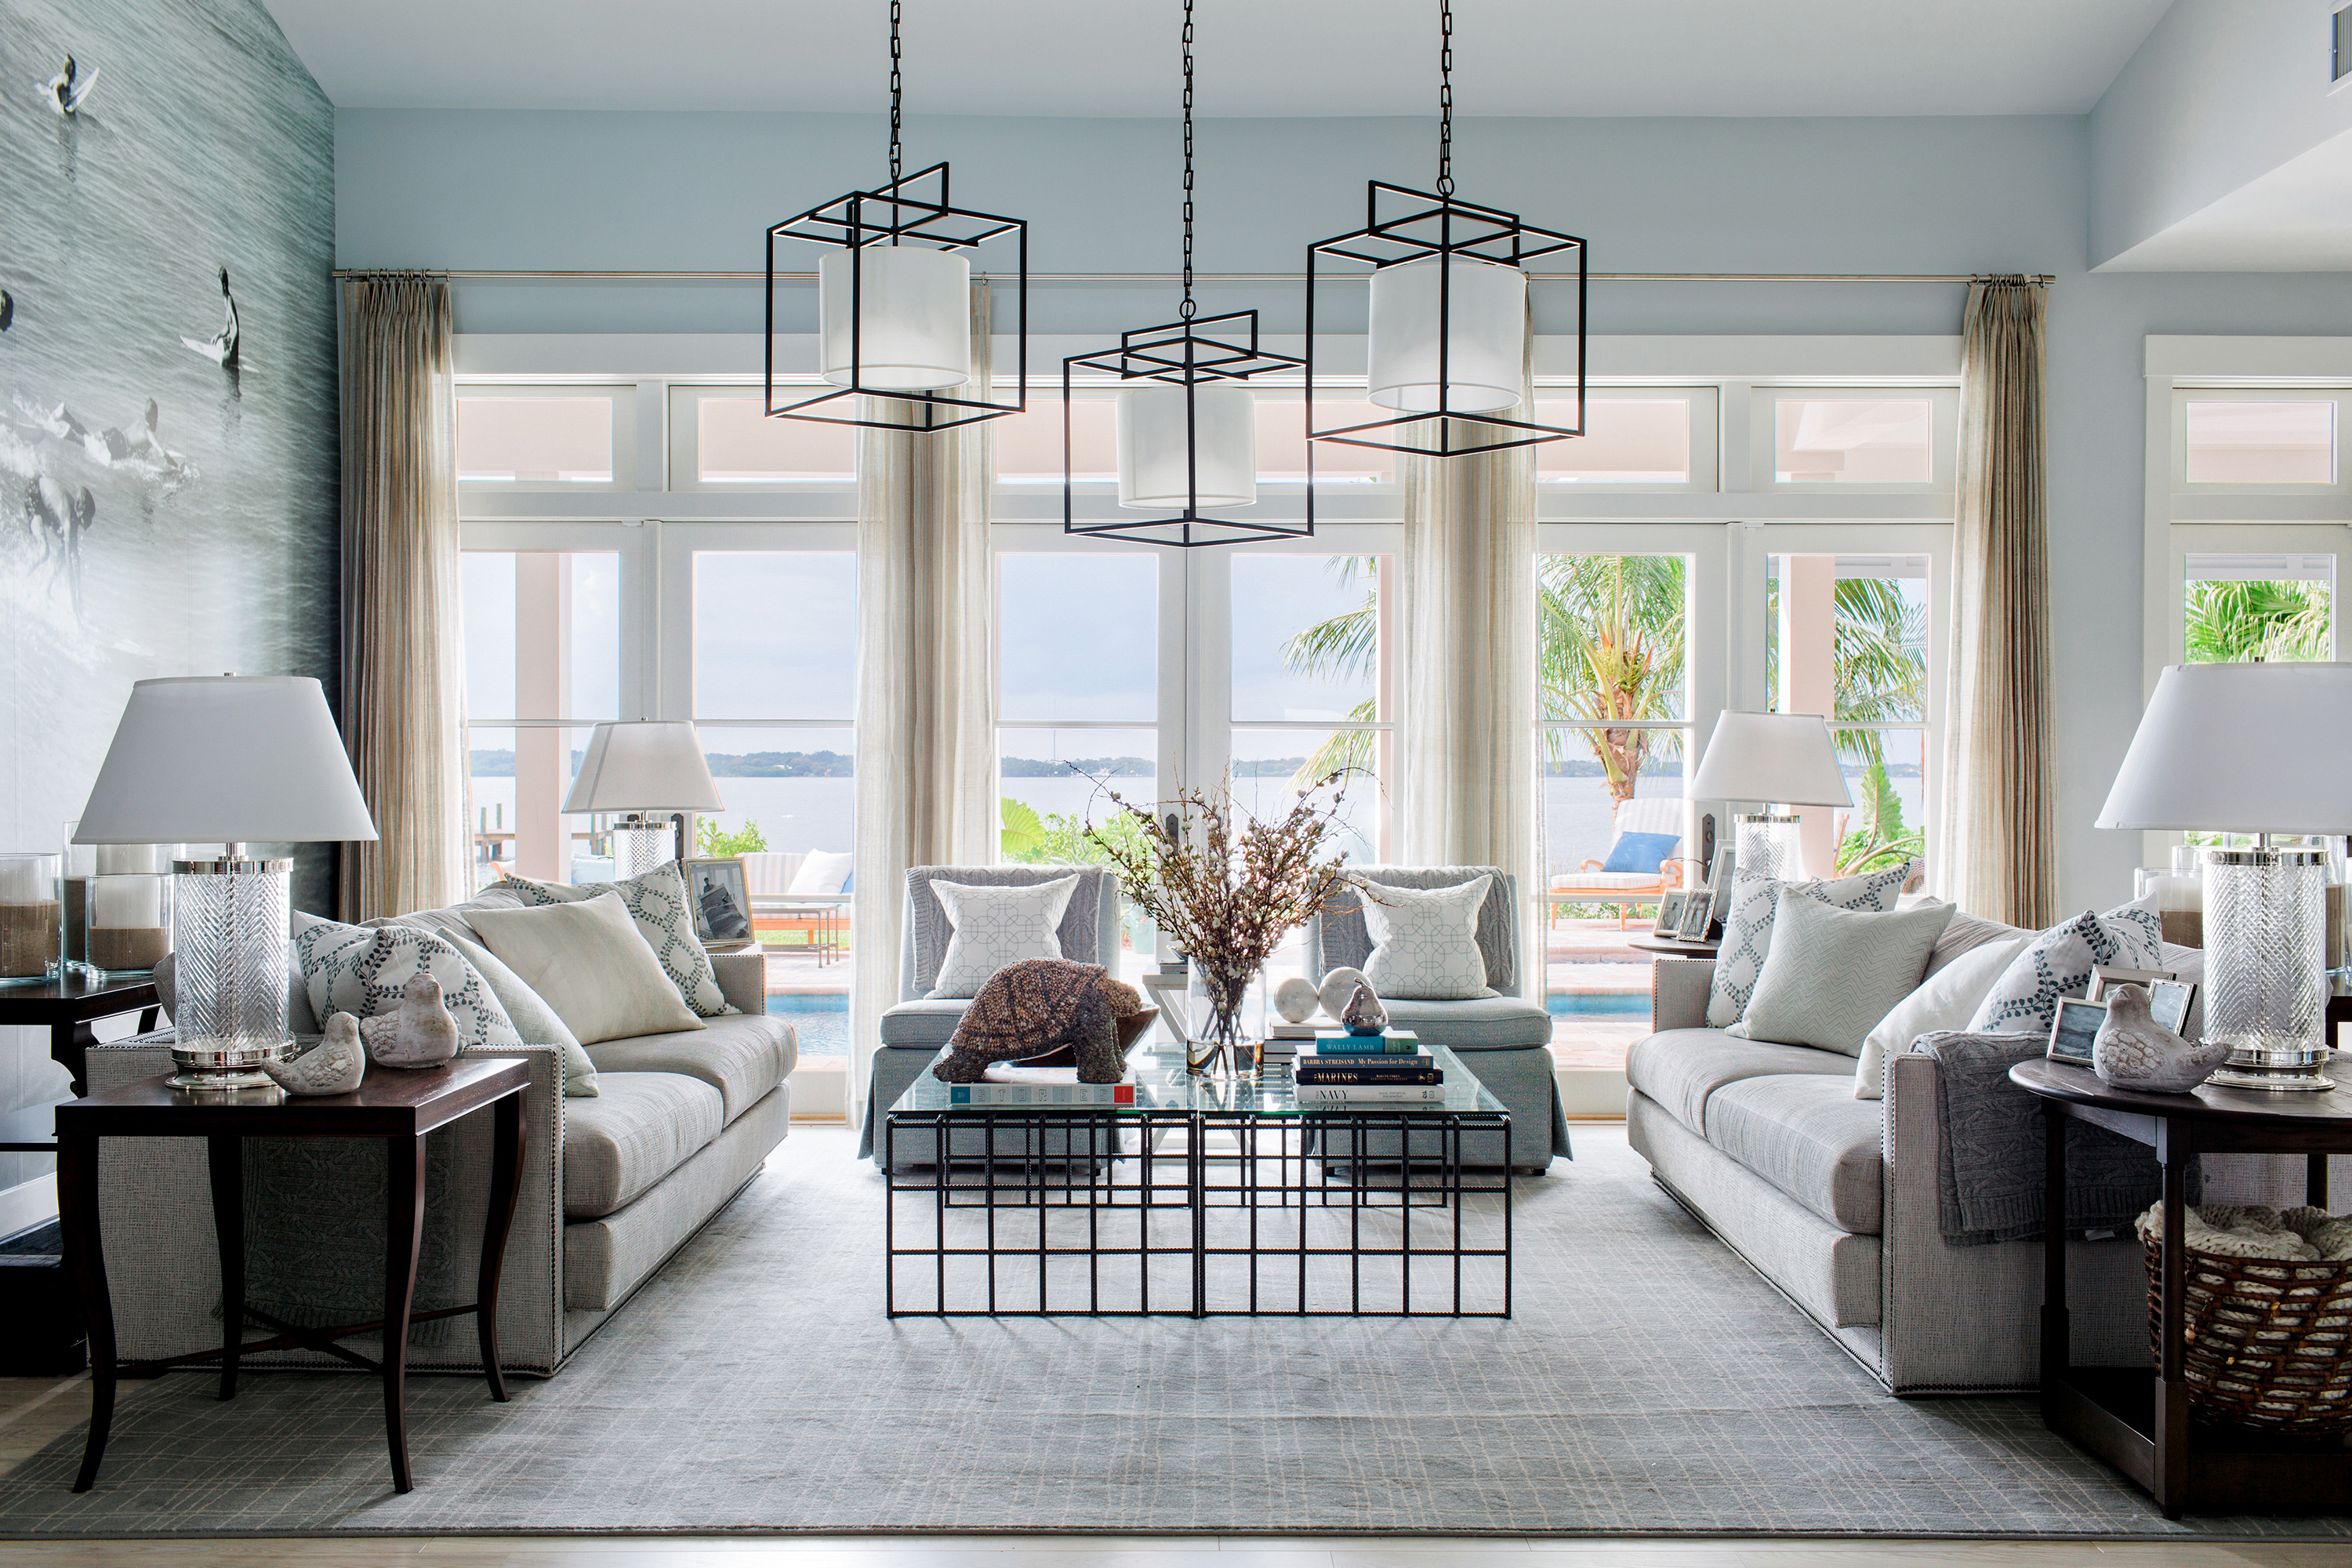 Brand Offered Interior Designer Brian Patrick Flynn The Inspiration Needed To Develop A Coastal Inspired Color Palette For The Hgtv Dream Home 2016